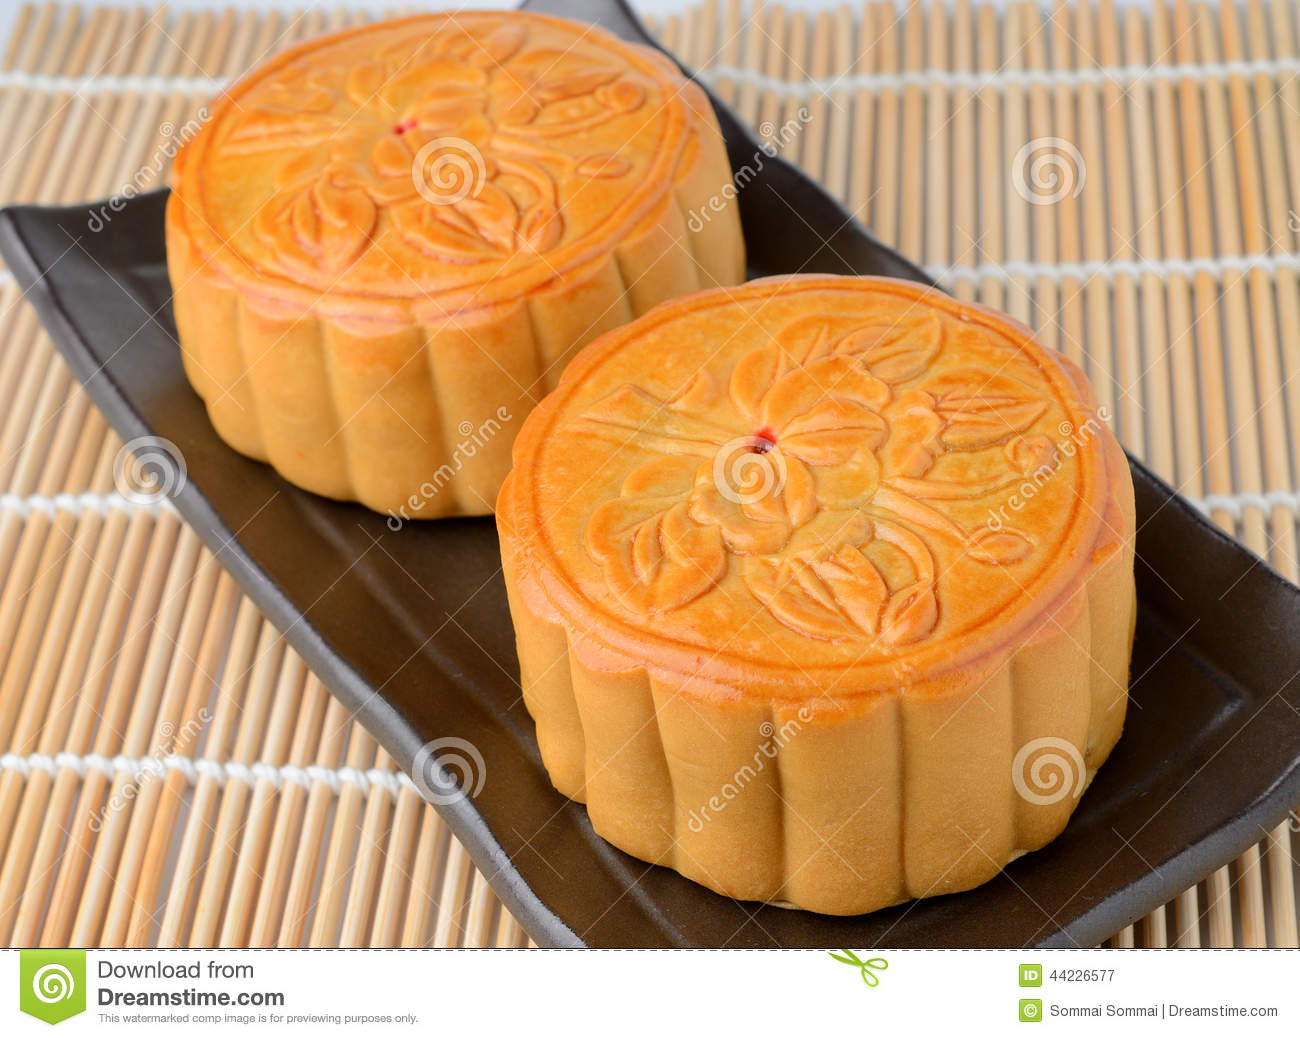 Moon Cake Stock Photo - Image: 44226577